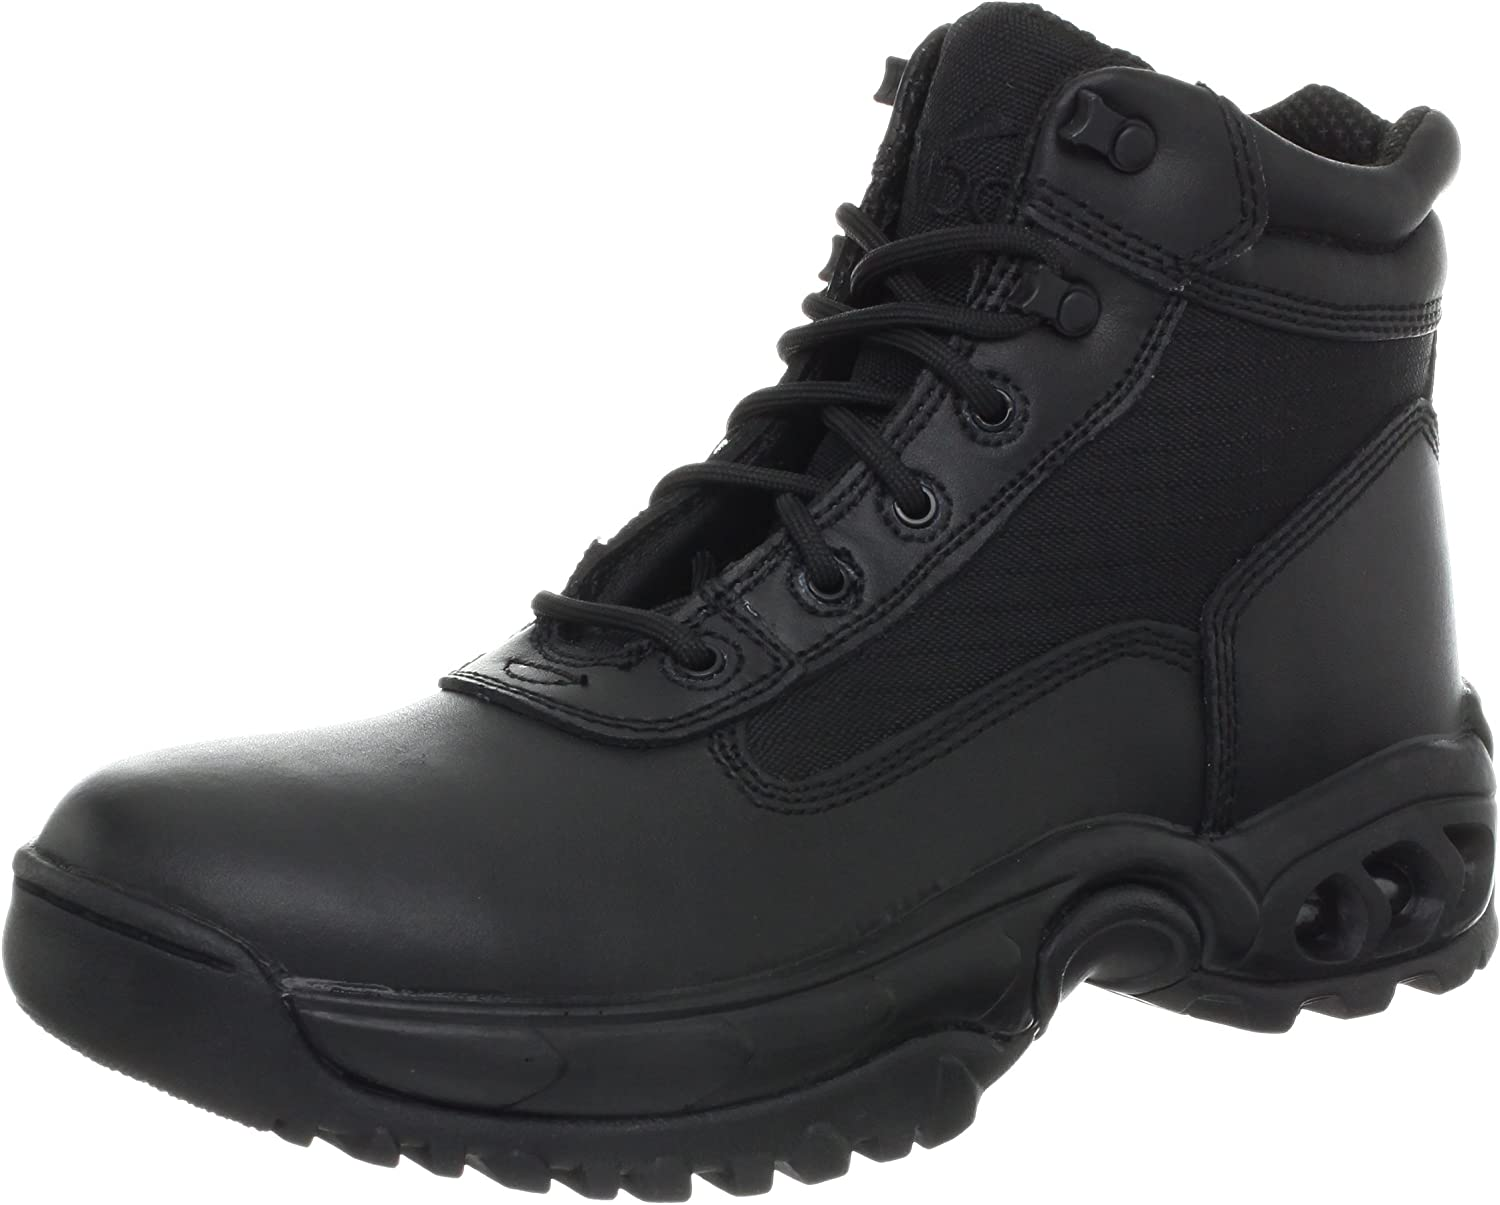 Ridge Footwear Men's Mid Side Zip Boot